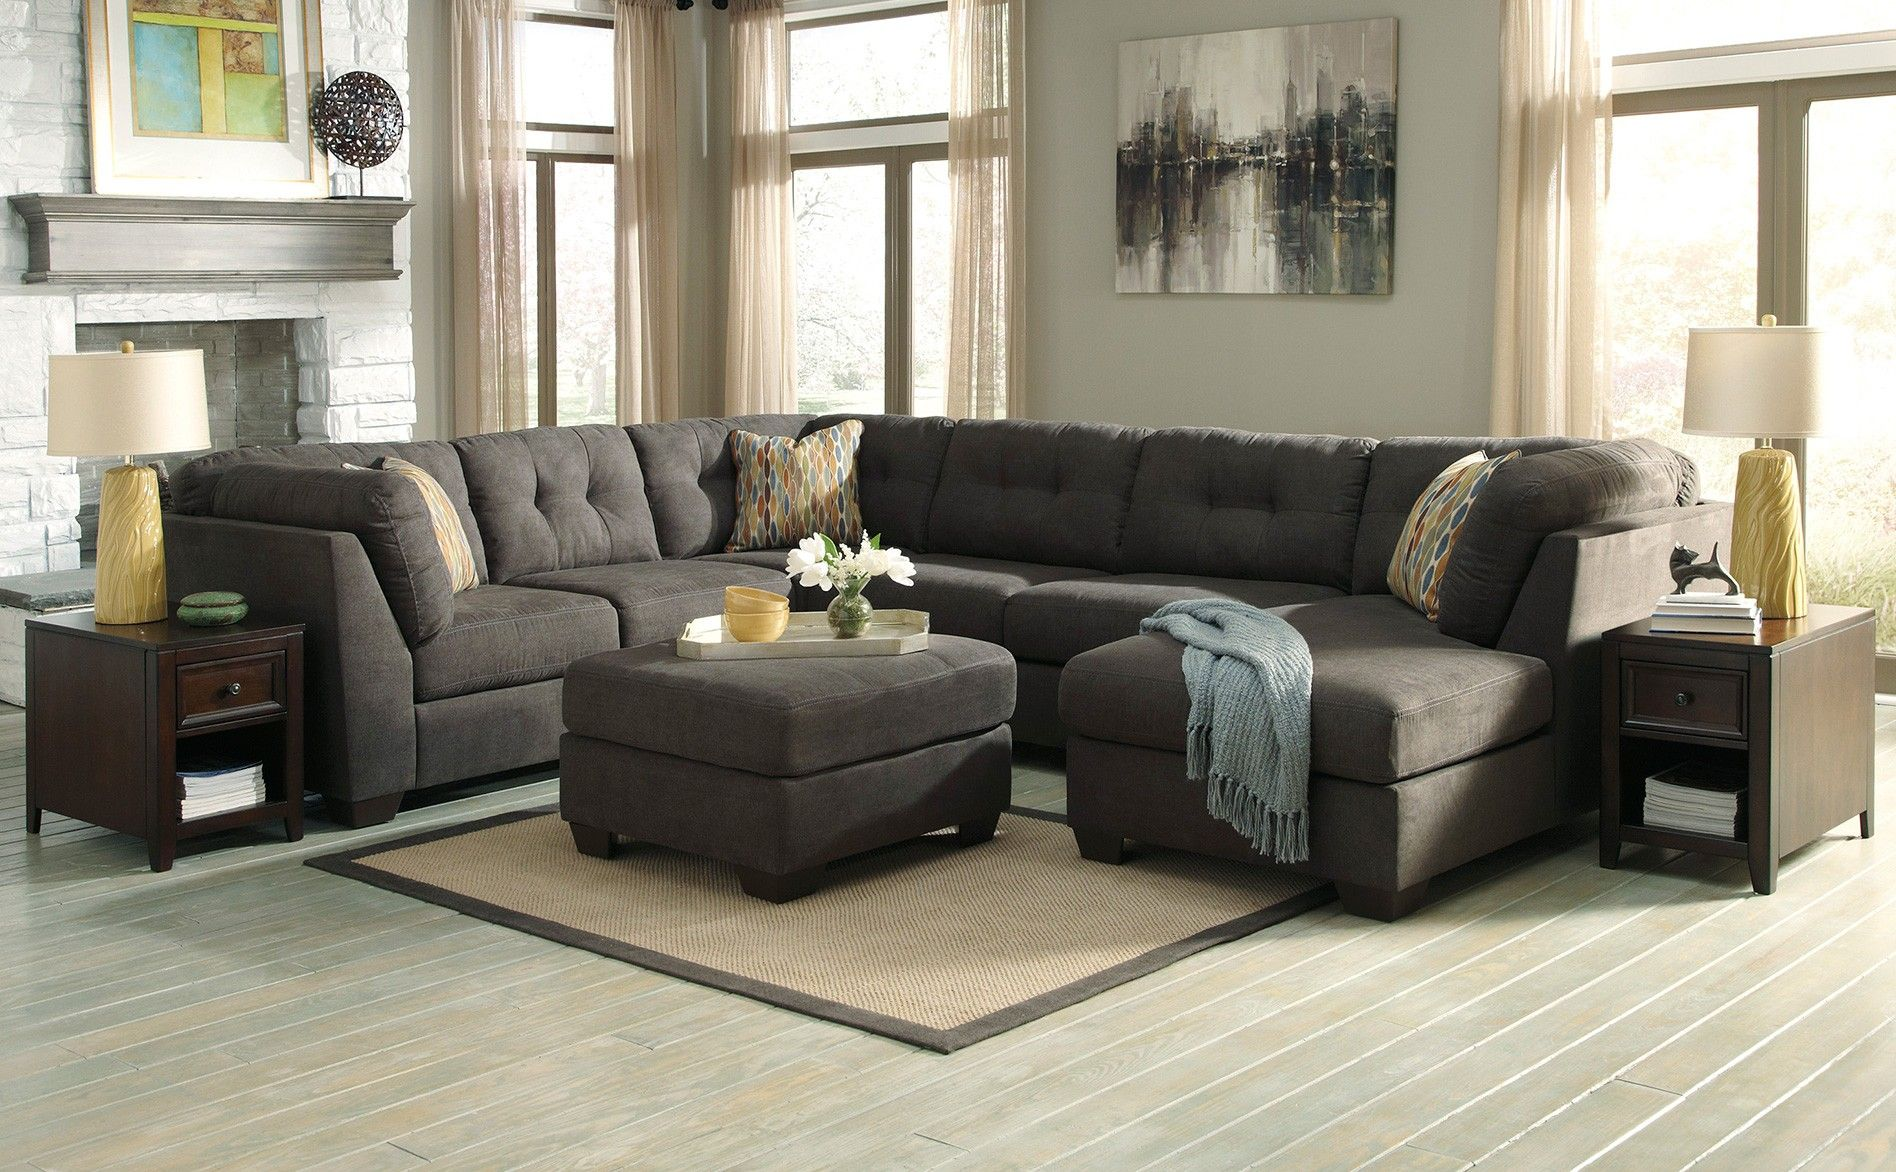 Pleasant Ashley Delta City Sectional Steel Sectionals Raleigh Download Free Architecture Designs Rallybritishbridgeorg